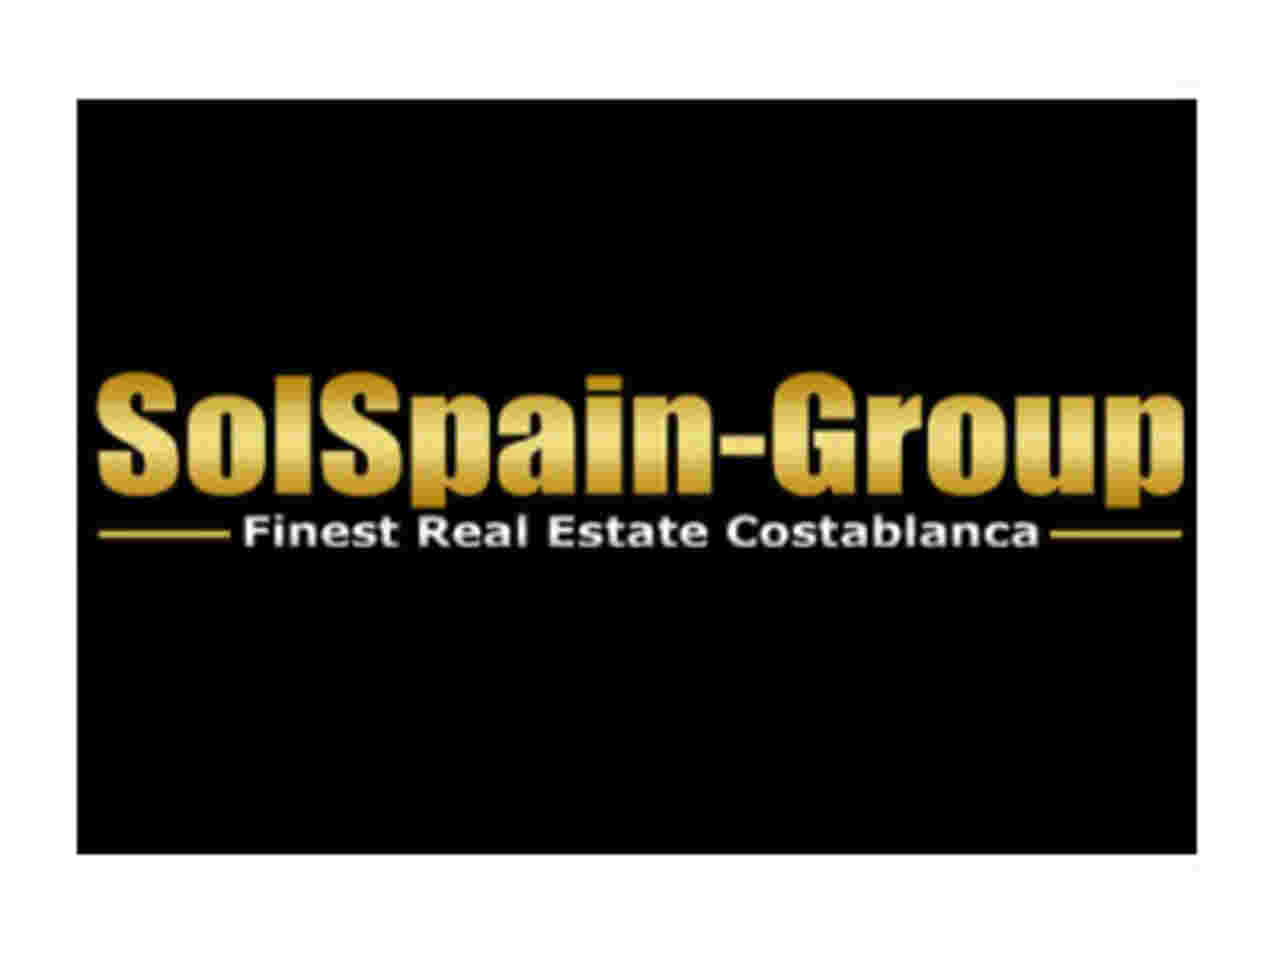 SolSpain-Group